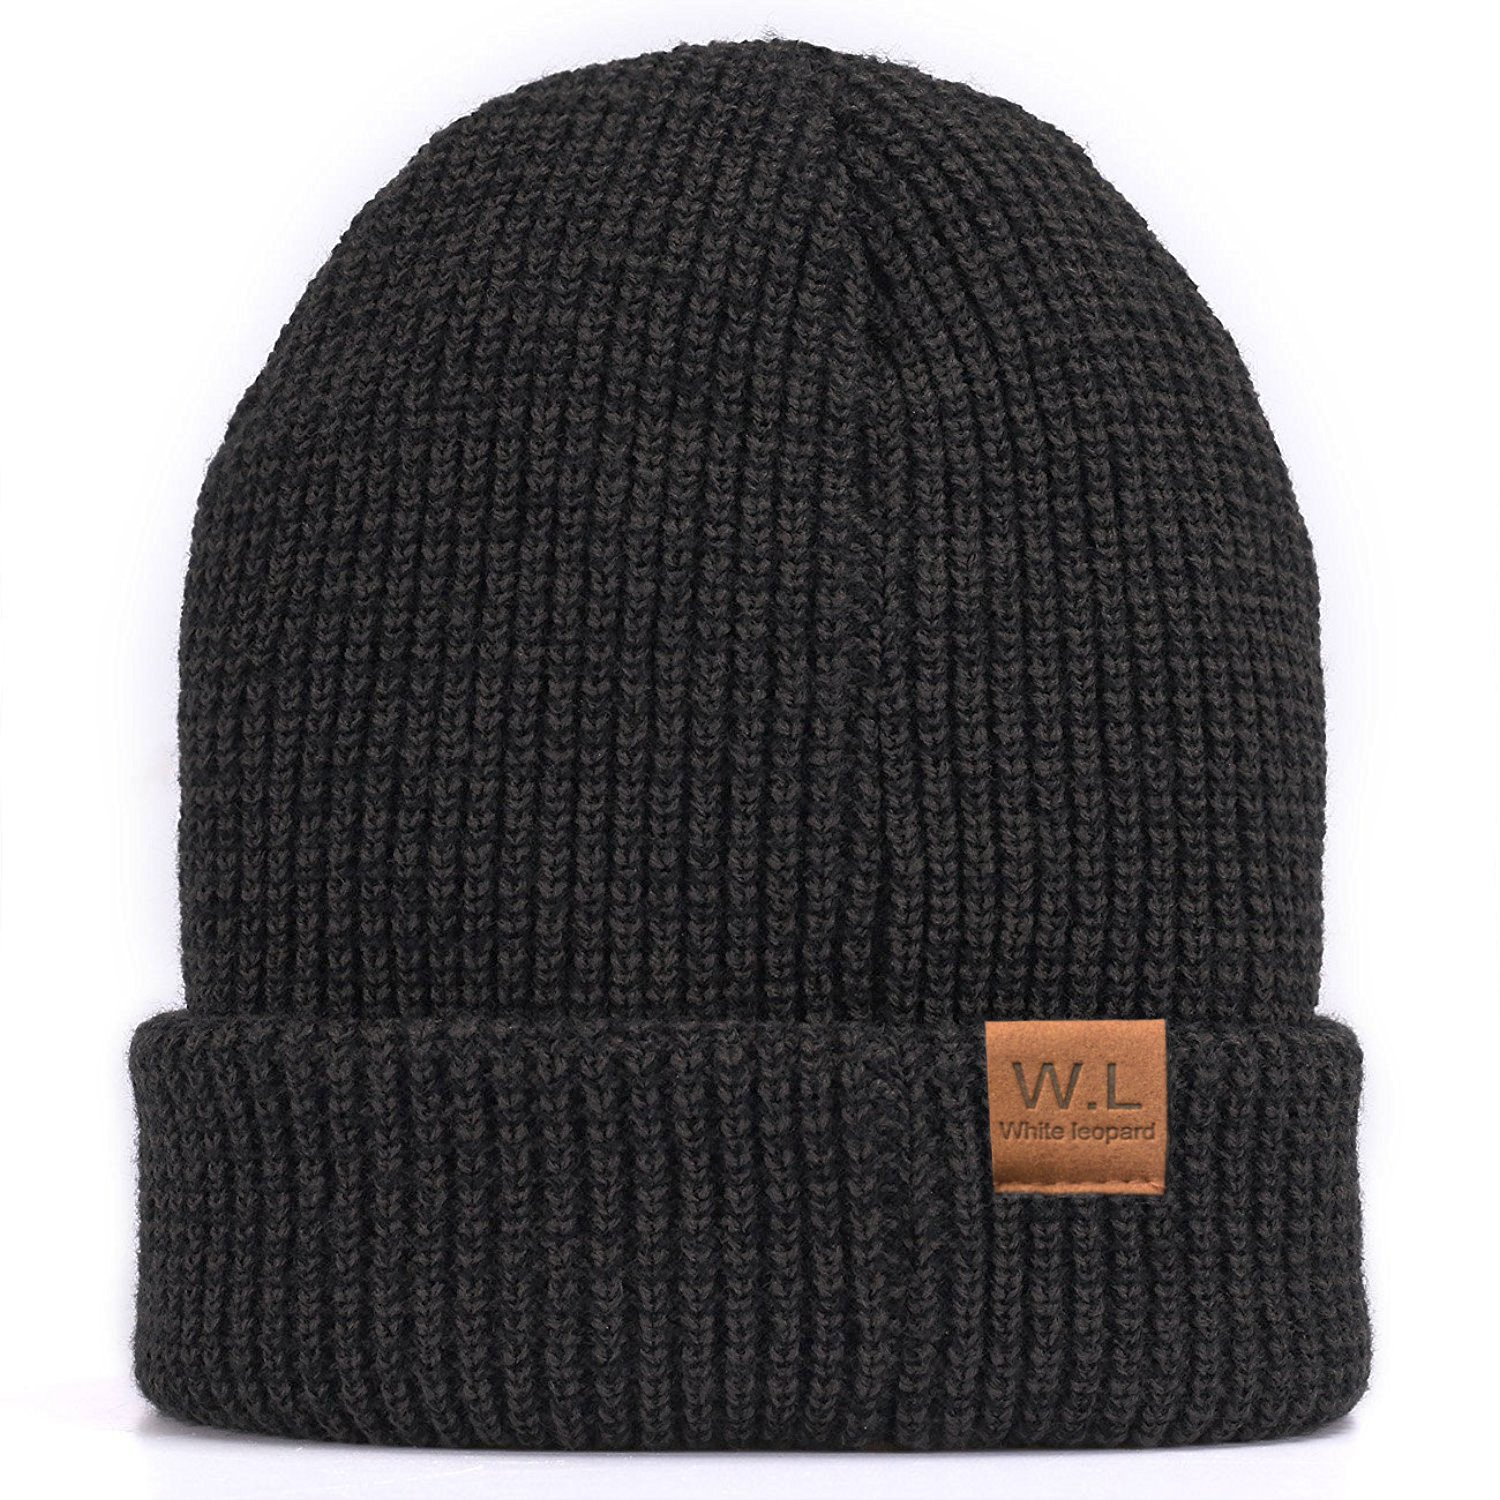 9146c9cd4cd Beanie Hat for Men and Women Lining CC Beanies Winter Warm Hats Knit  Slouchy Thick Skull Cap at Amazon Men s Clothing store